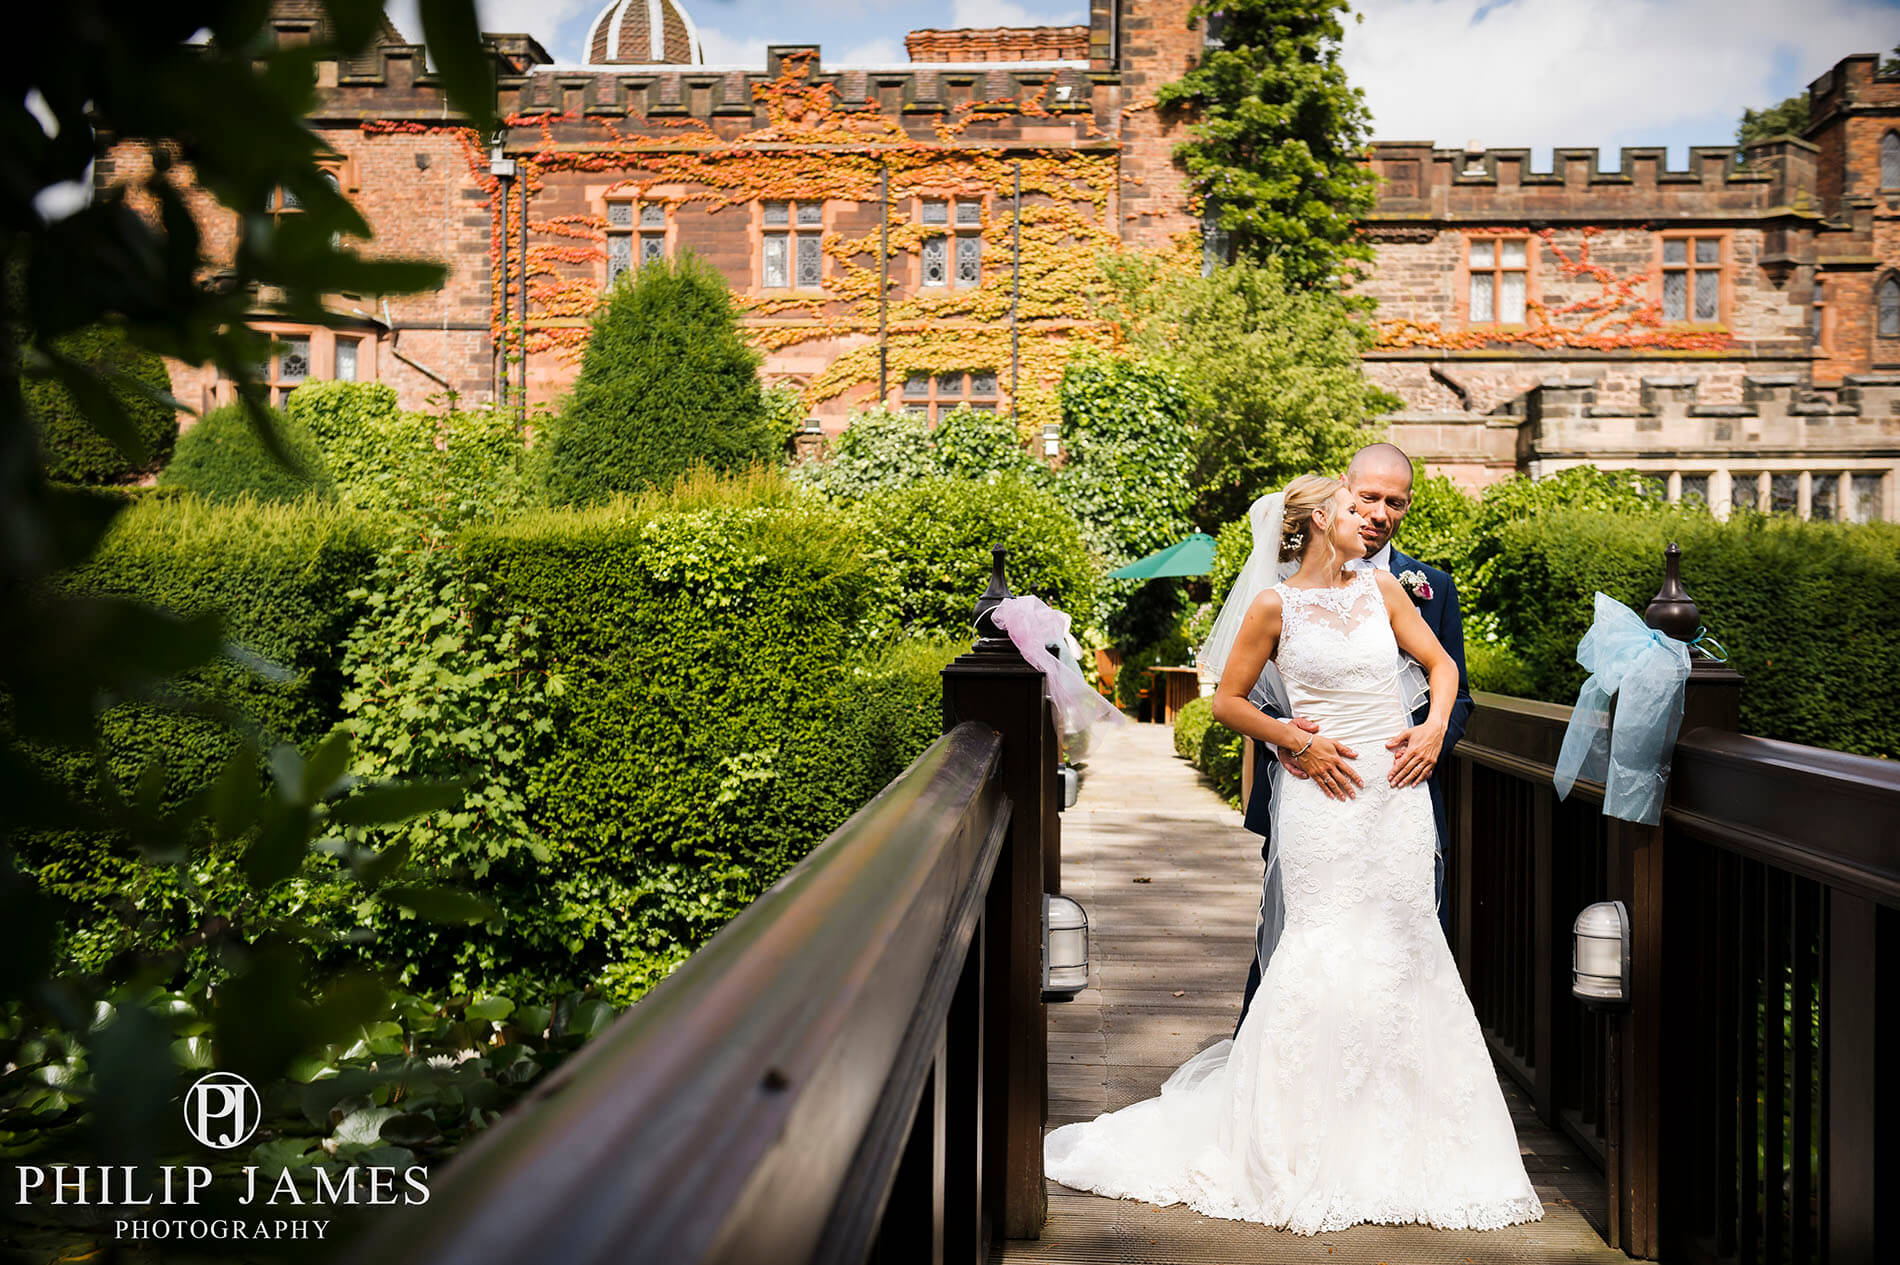 Birmingham Wedding Photographer - Philip James Photography based in Solihull (49 of 68)